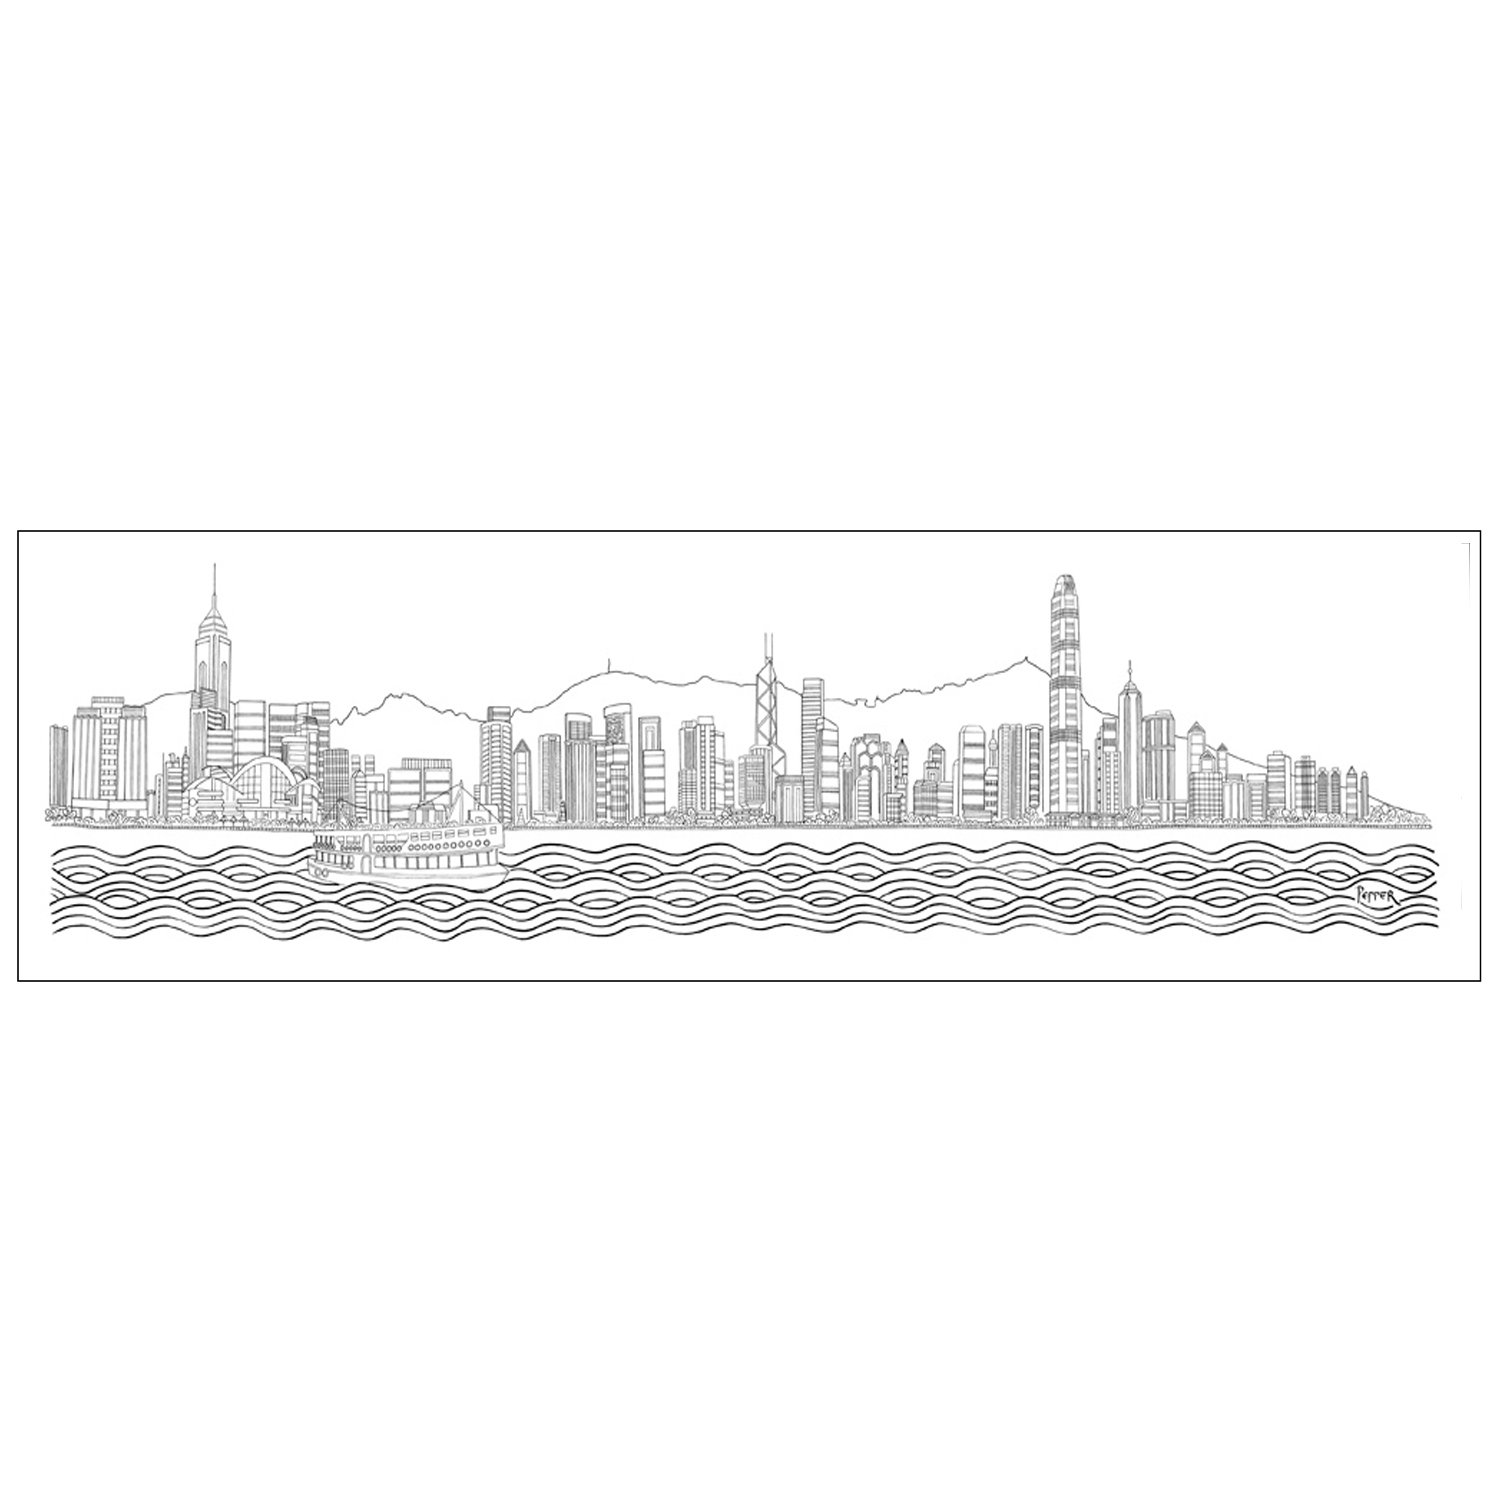 HONG KONG SKYLINE - Drawing by Rob Pepper